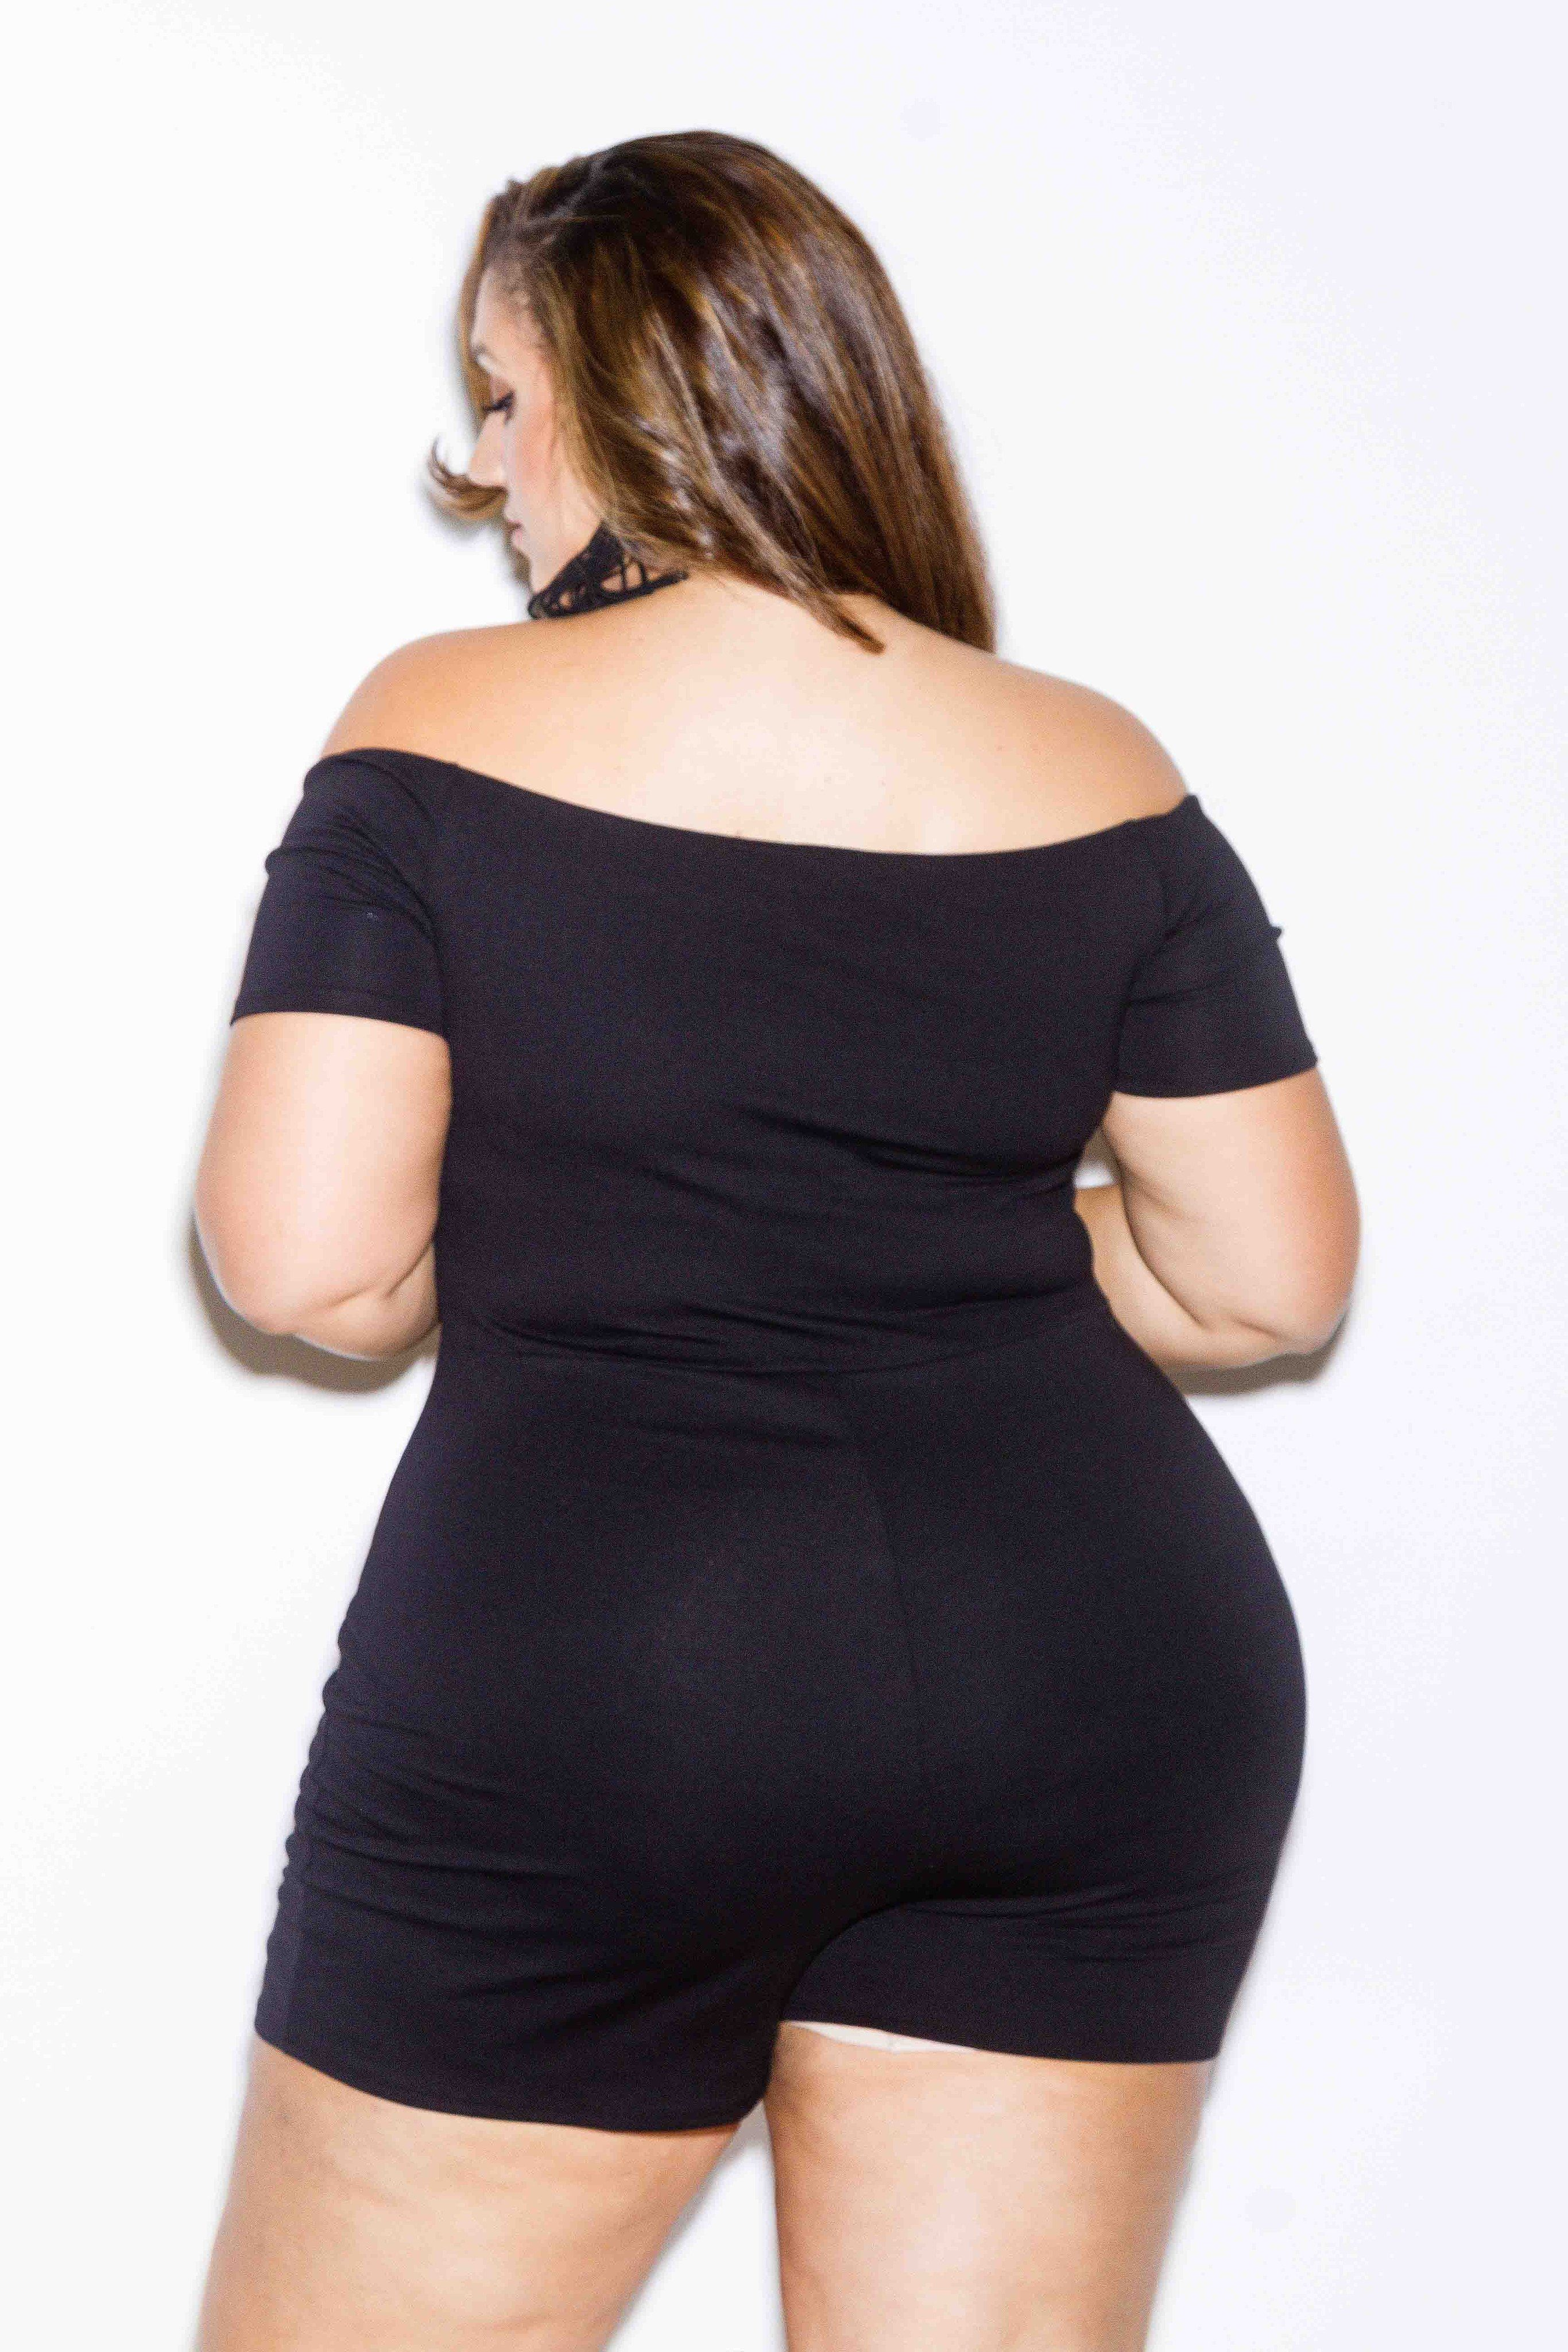 ace2b922a6 Plus Size Off Shoulder Romper | Erica Lauren McNeill (PinkClubWear ...